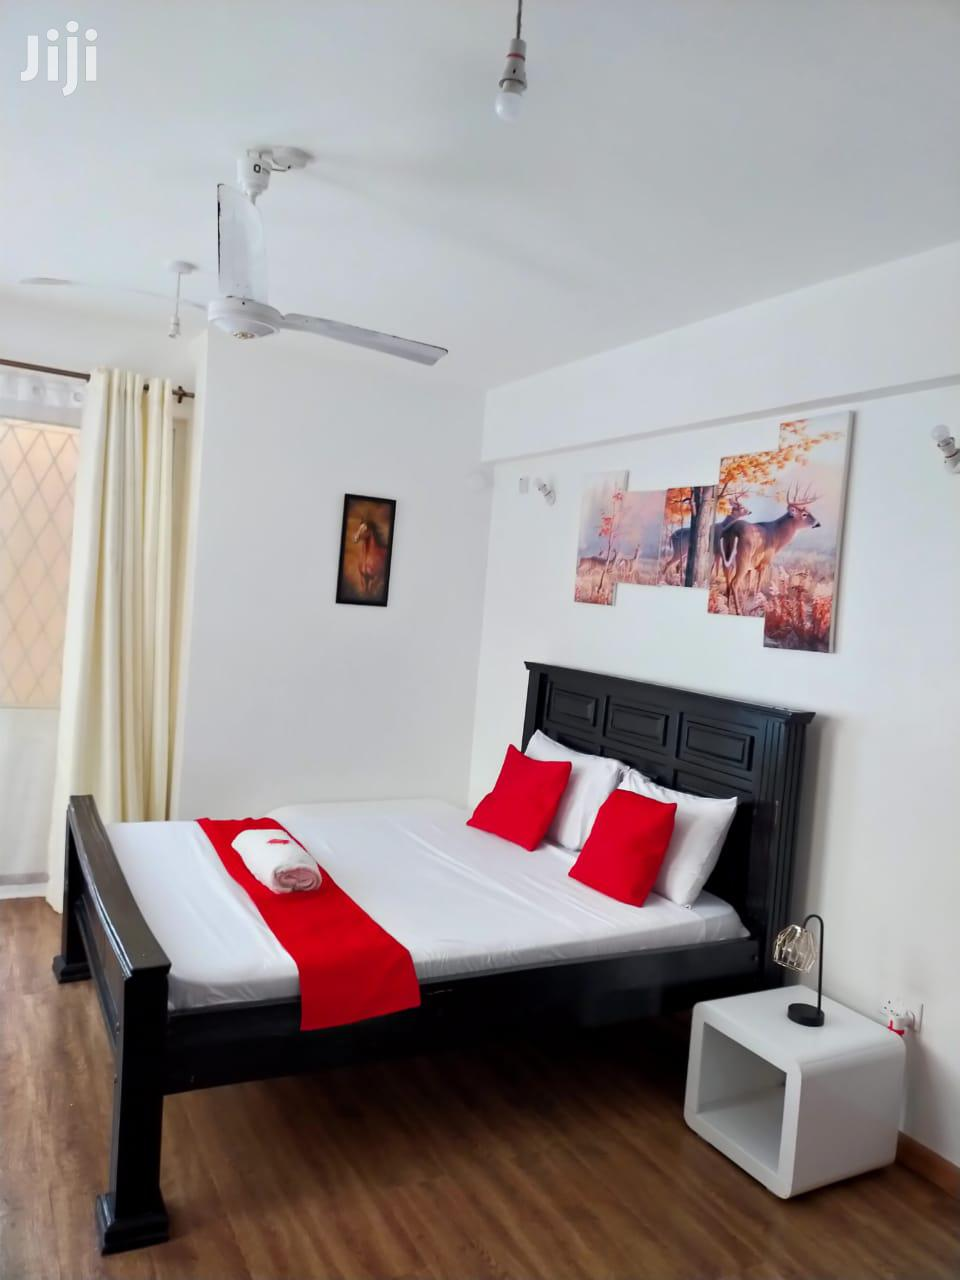 3 Bedrooms Holiday Apartment | Short Let for sale in Nyali, Mombasa, Kenya